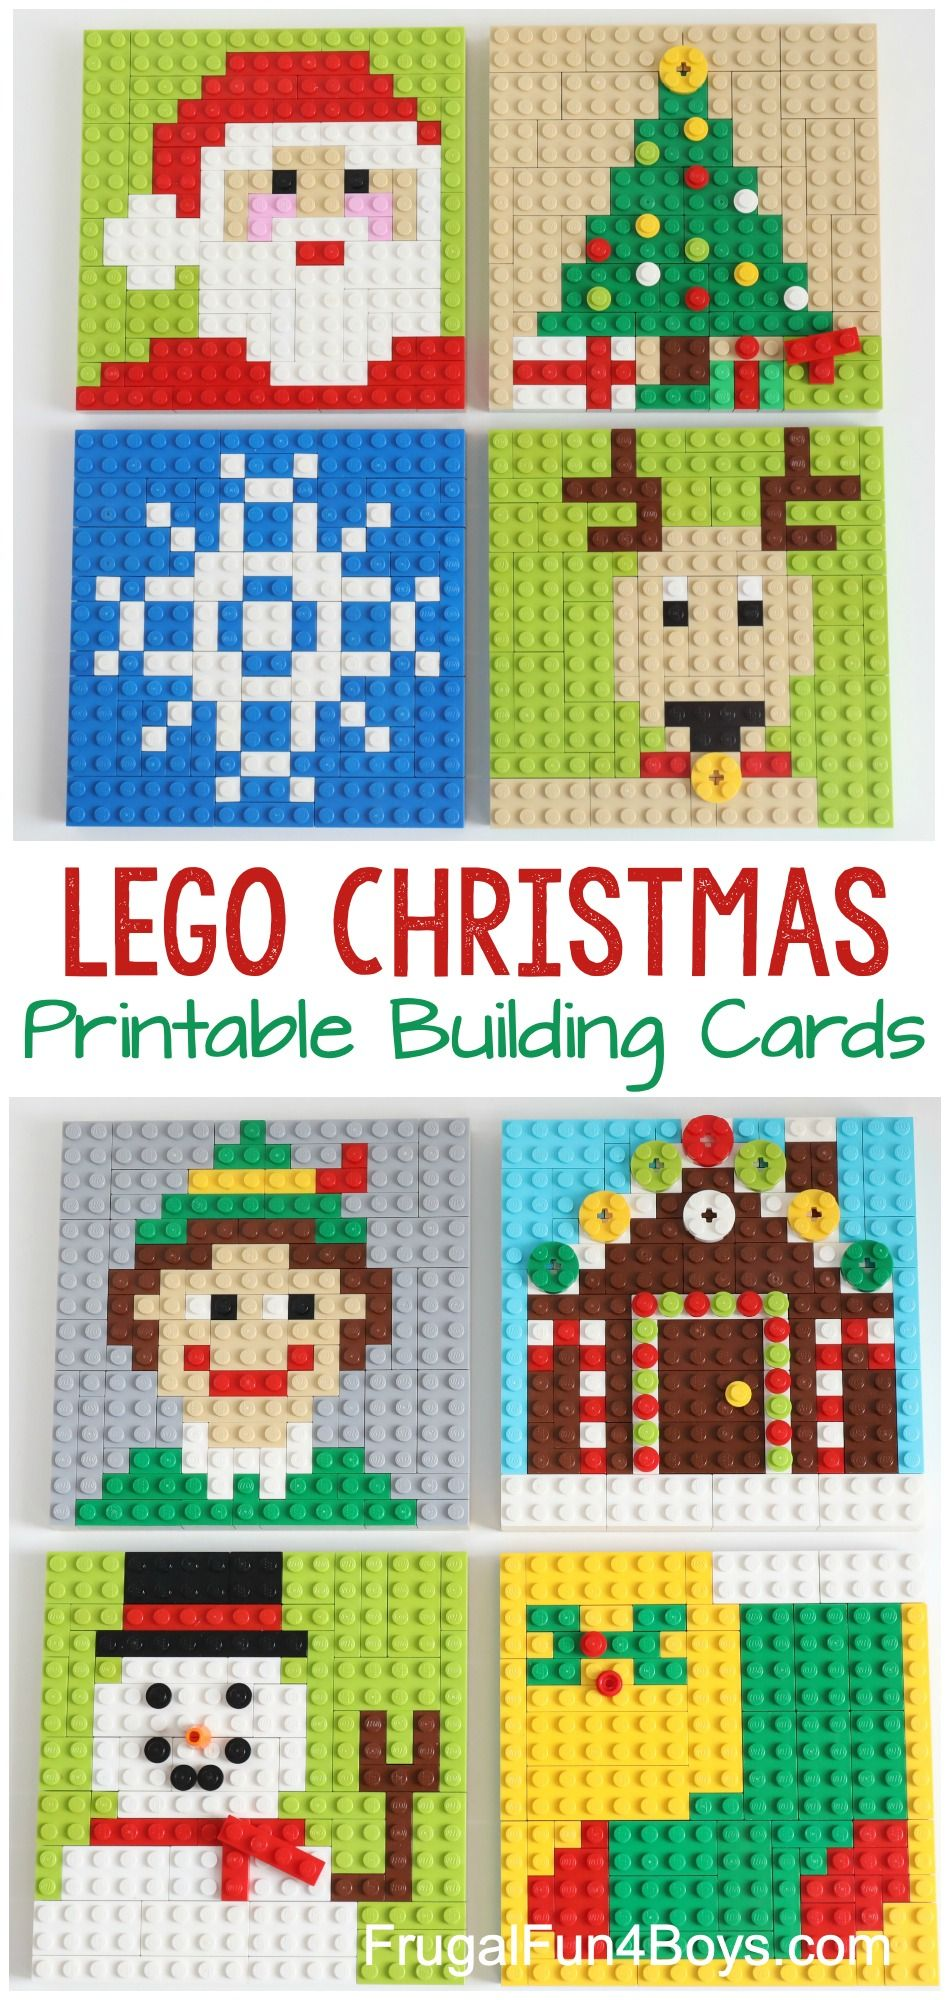 Printable LEGO Christmas Building Cards